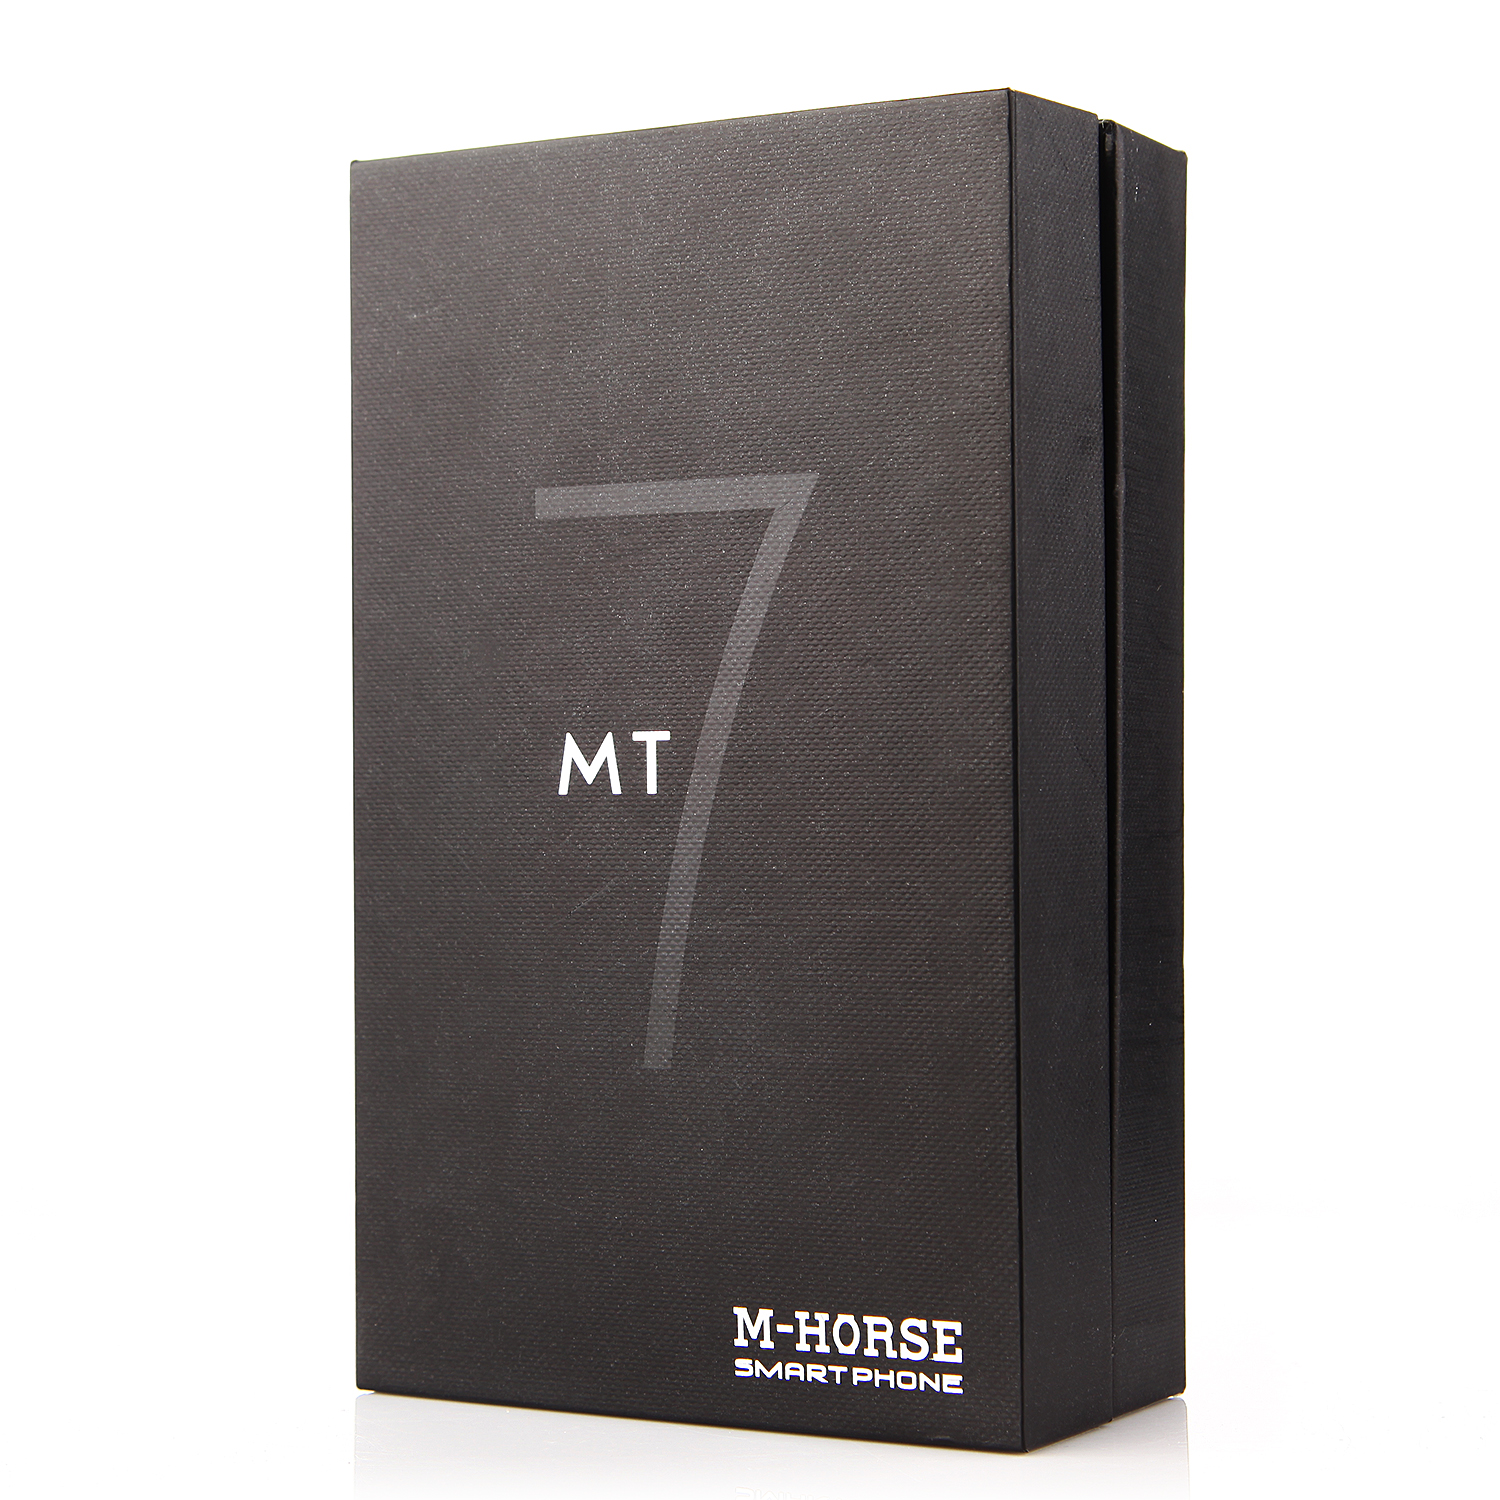 M-HORSE Mate7 Smartphone Android 4.4 512MB 4GB 5.5 Inch QHD Screen Smart Wake Black